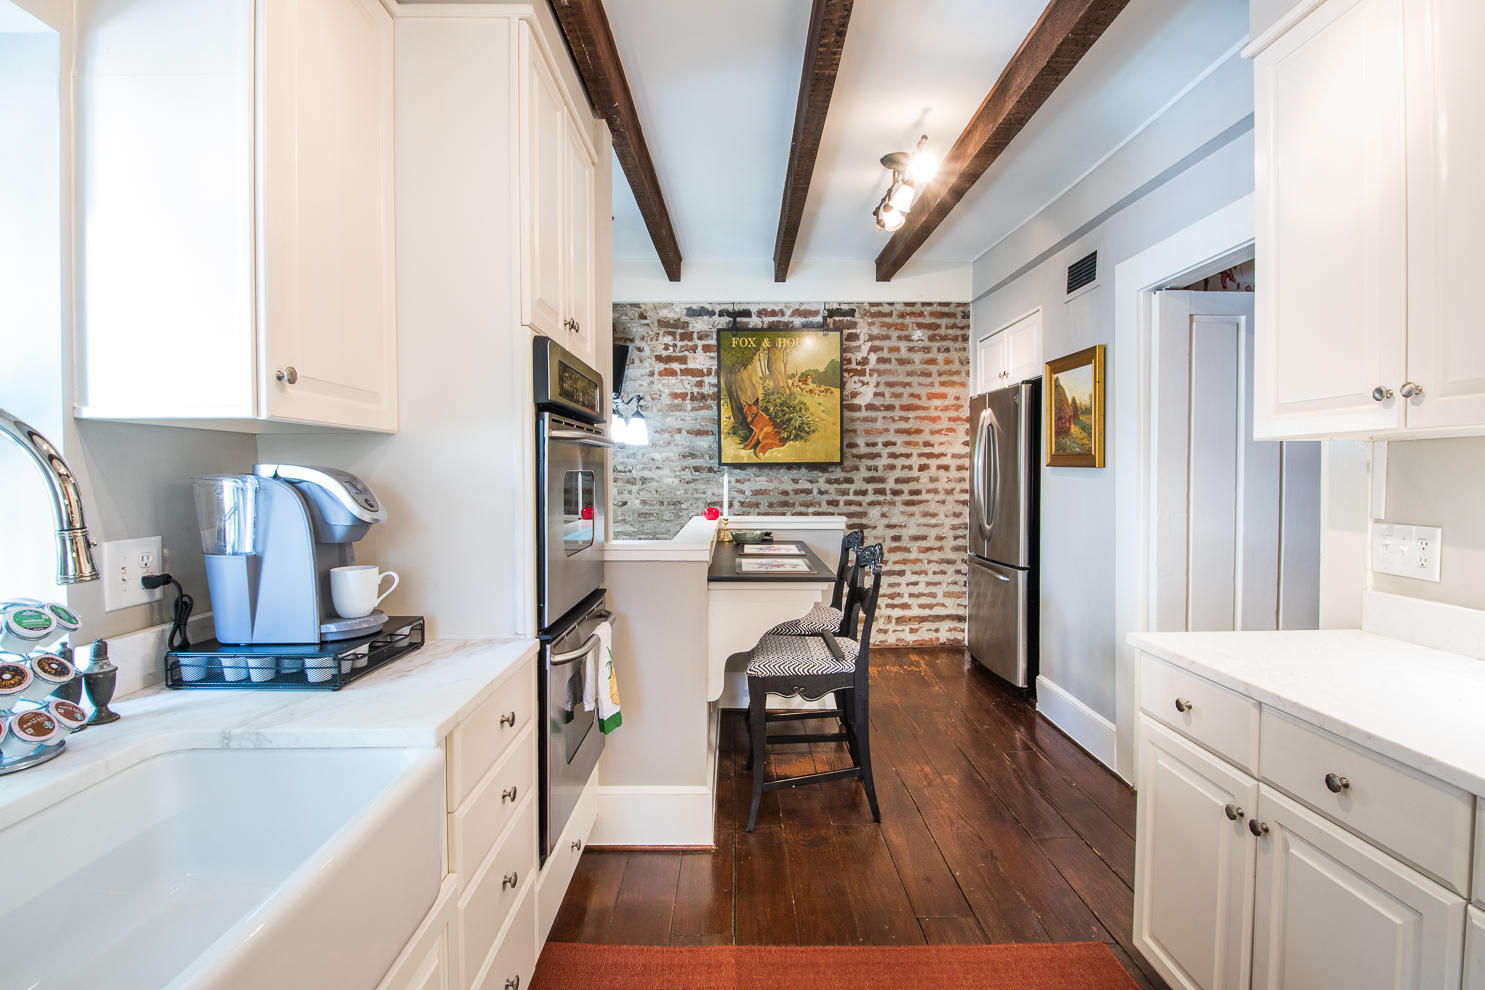 South of Broad Homes For Sale - 1 Prices, Charleston, SC - 19